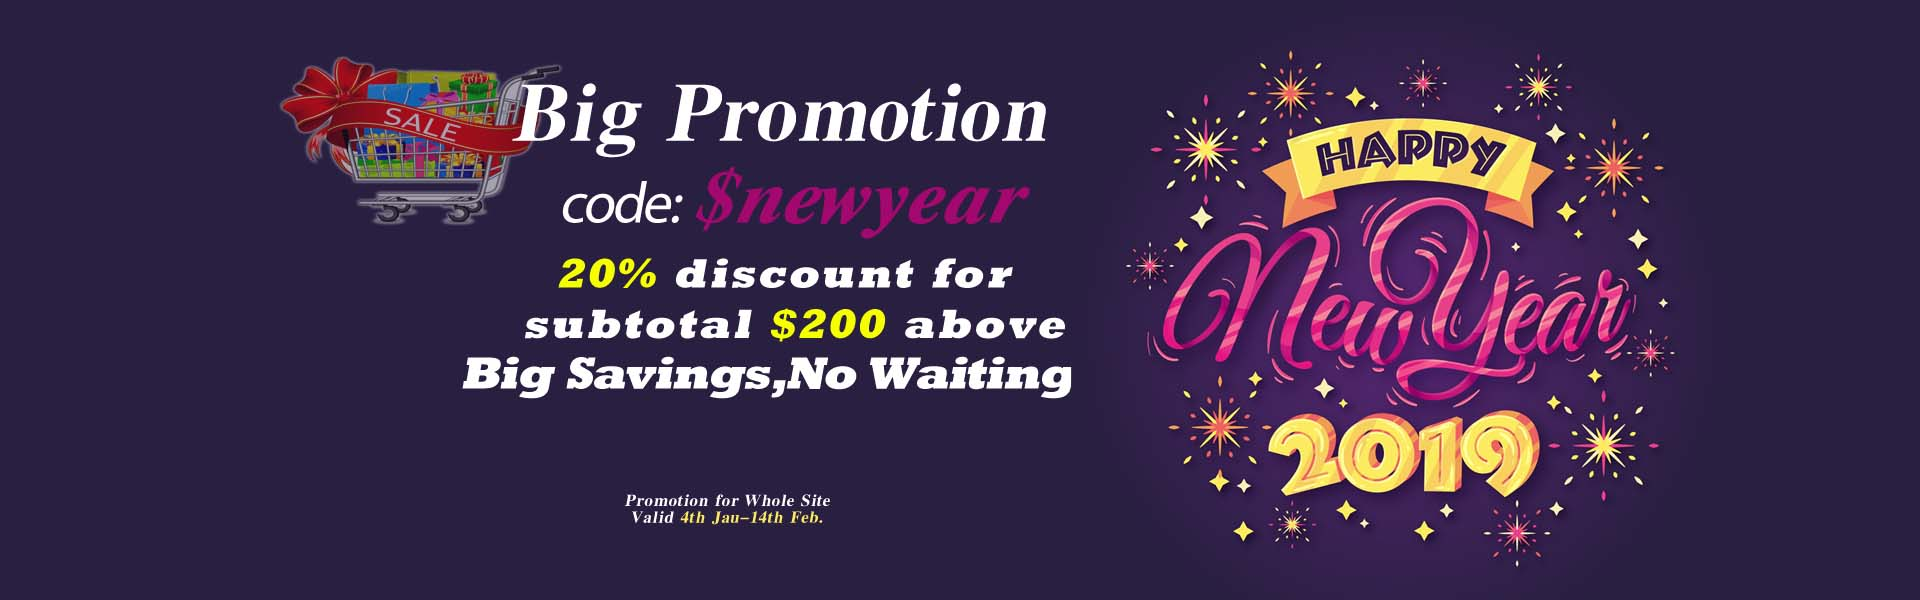 promotion Happy New Year